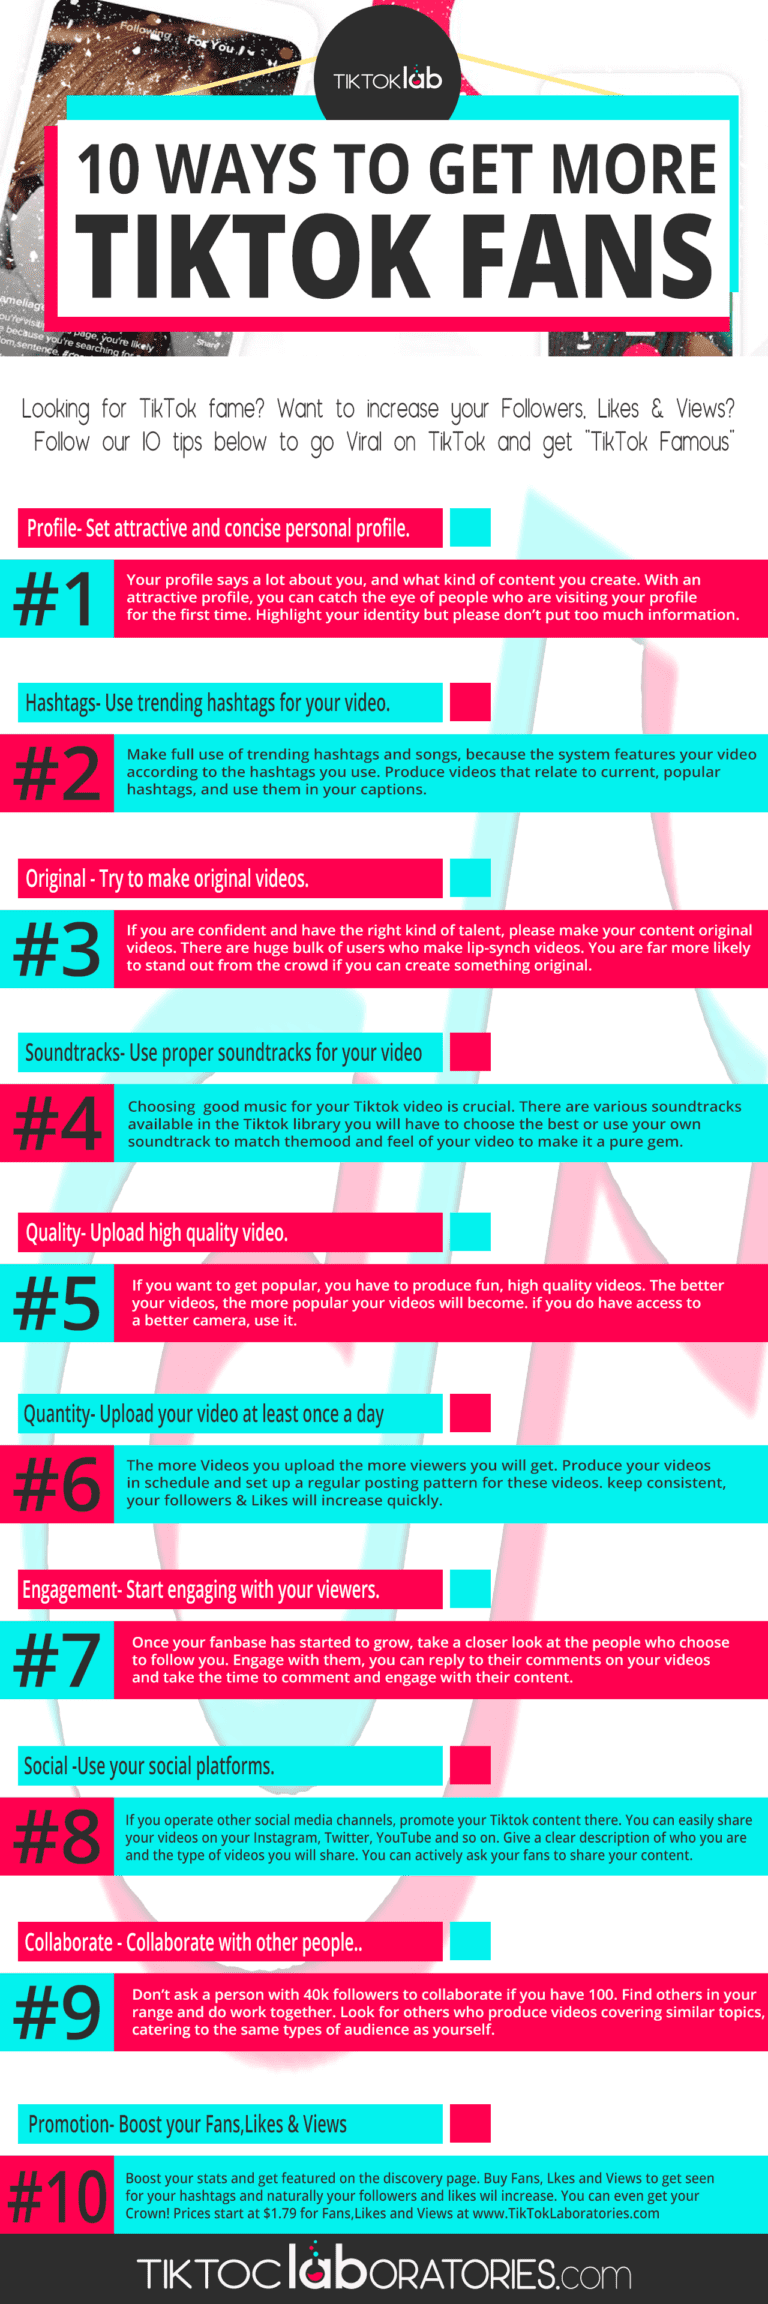 Get more Tiktok fans and strengthen your brand on this platform by checking out this infographic.